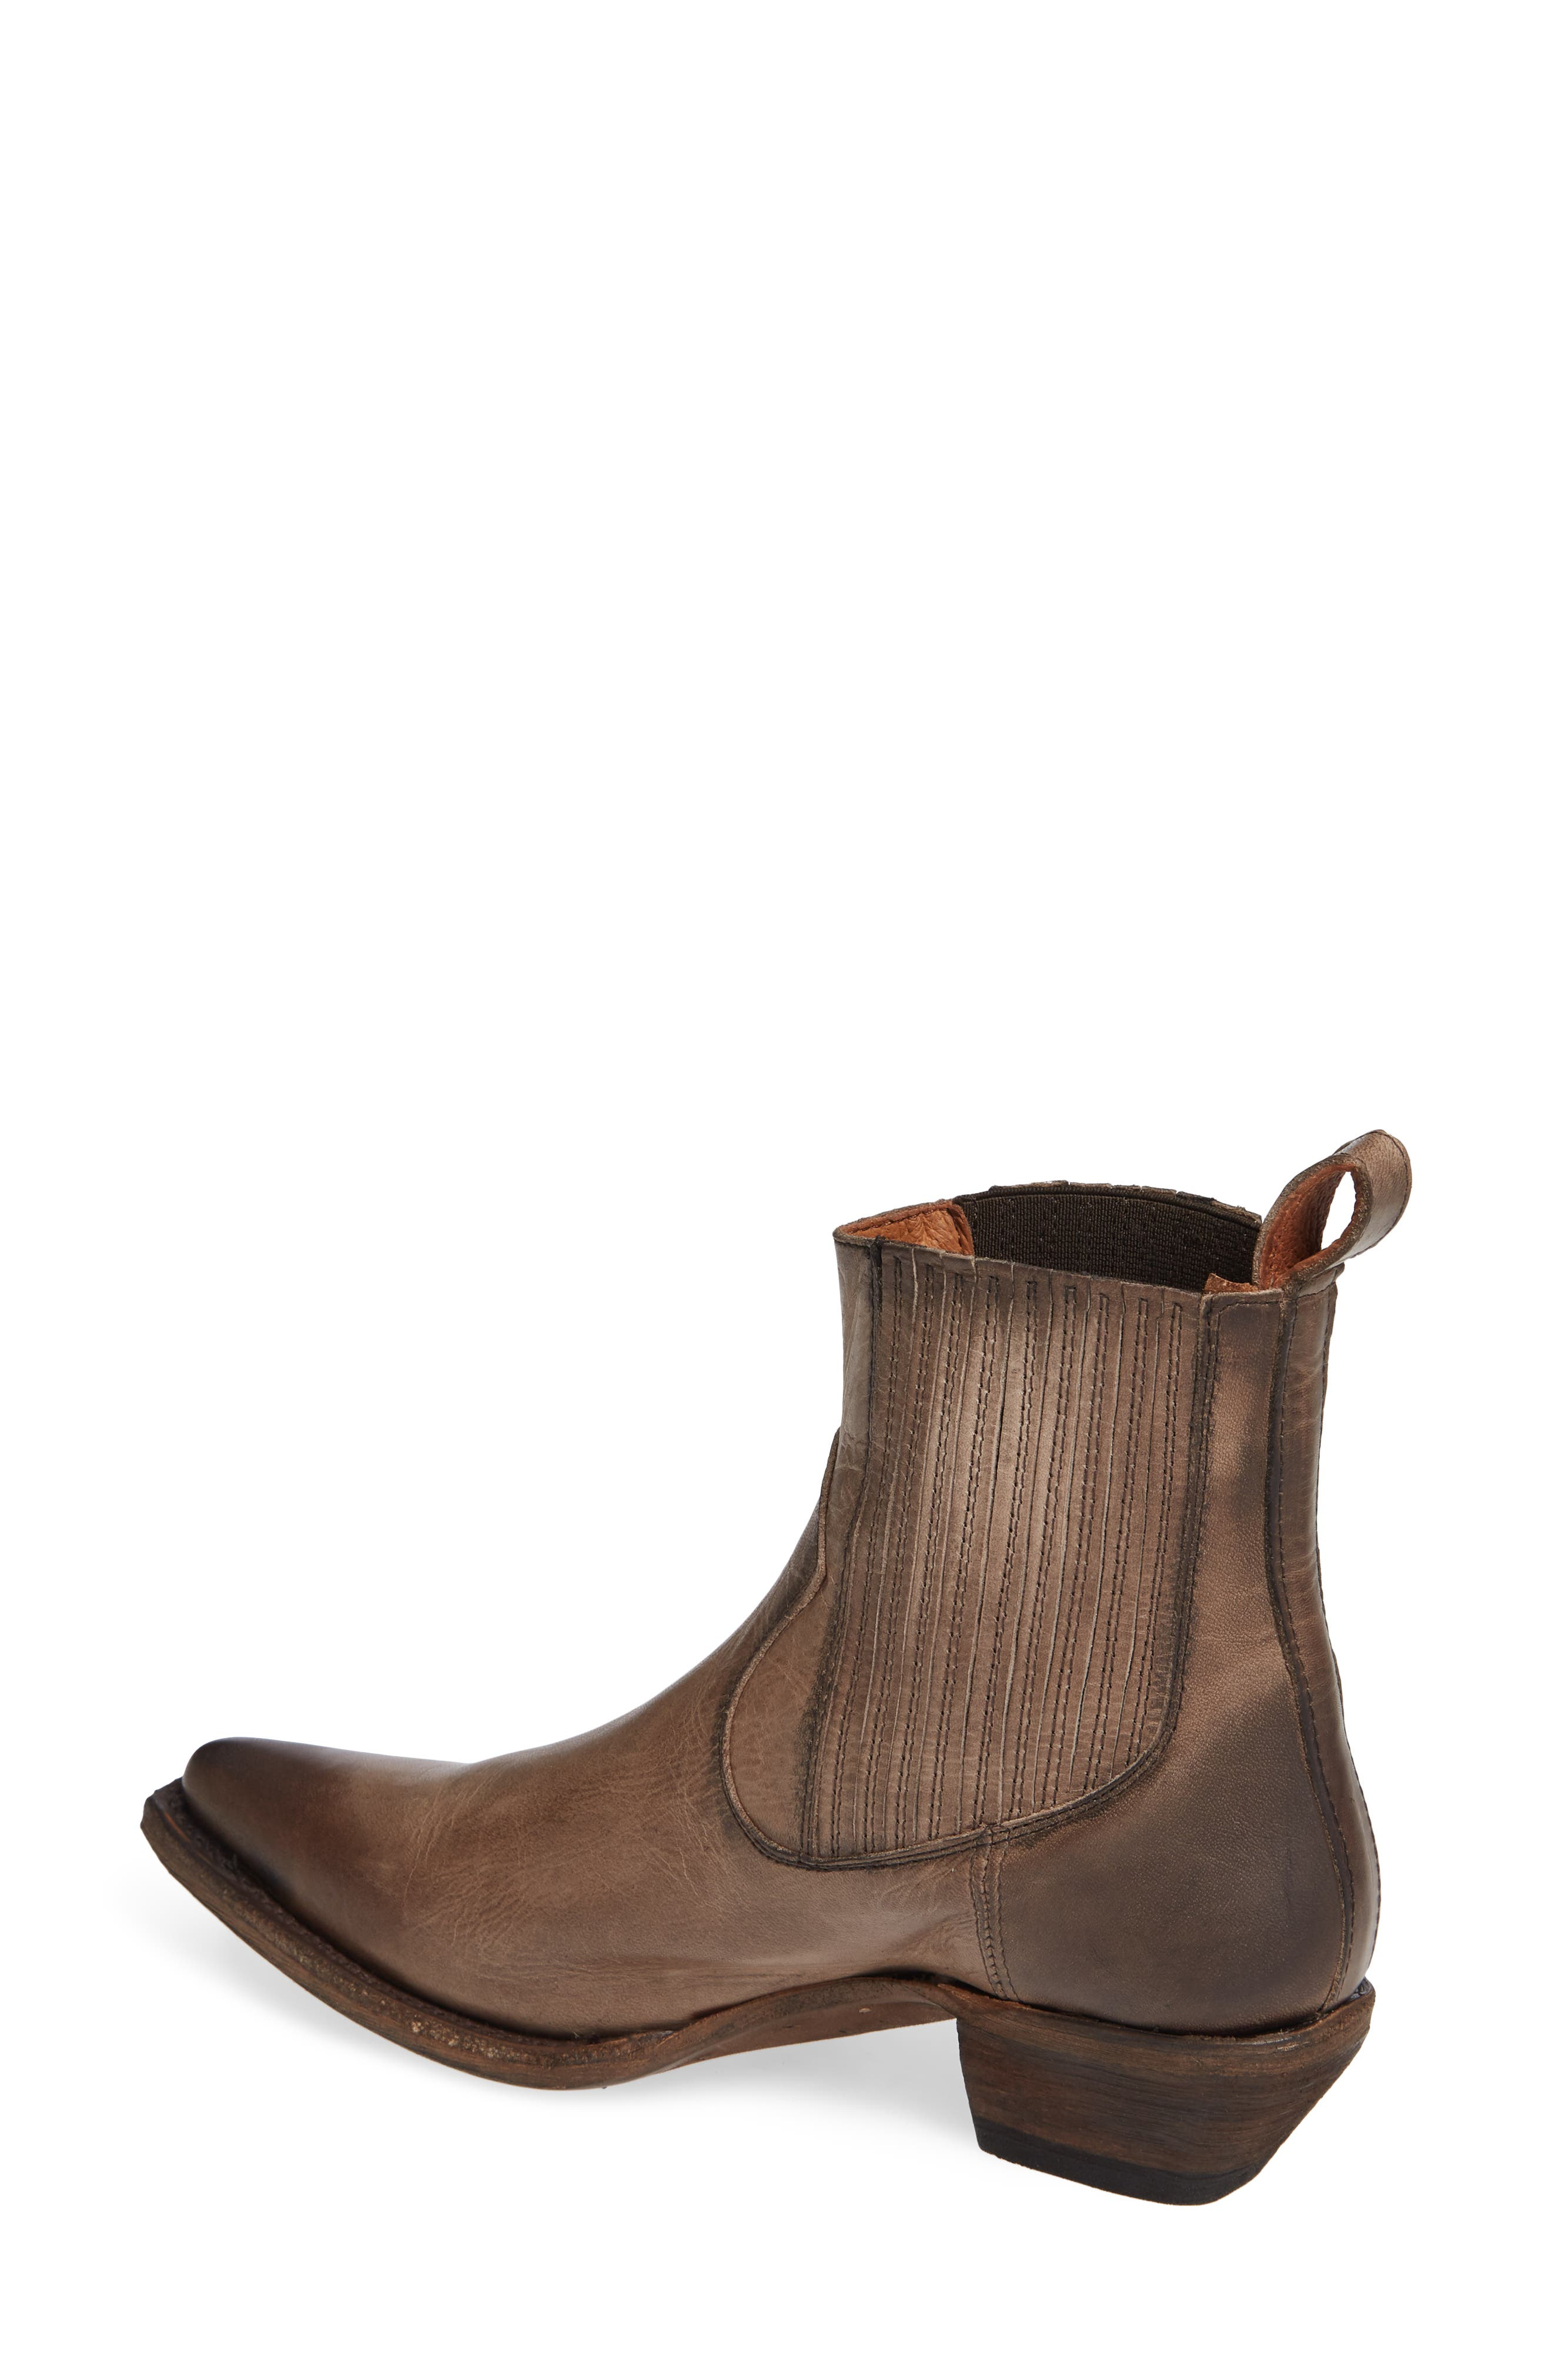 Sacha Western Bootie,                             Alternate thumbnail 2, color,                             STONE LEATHER